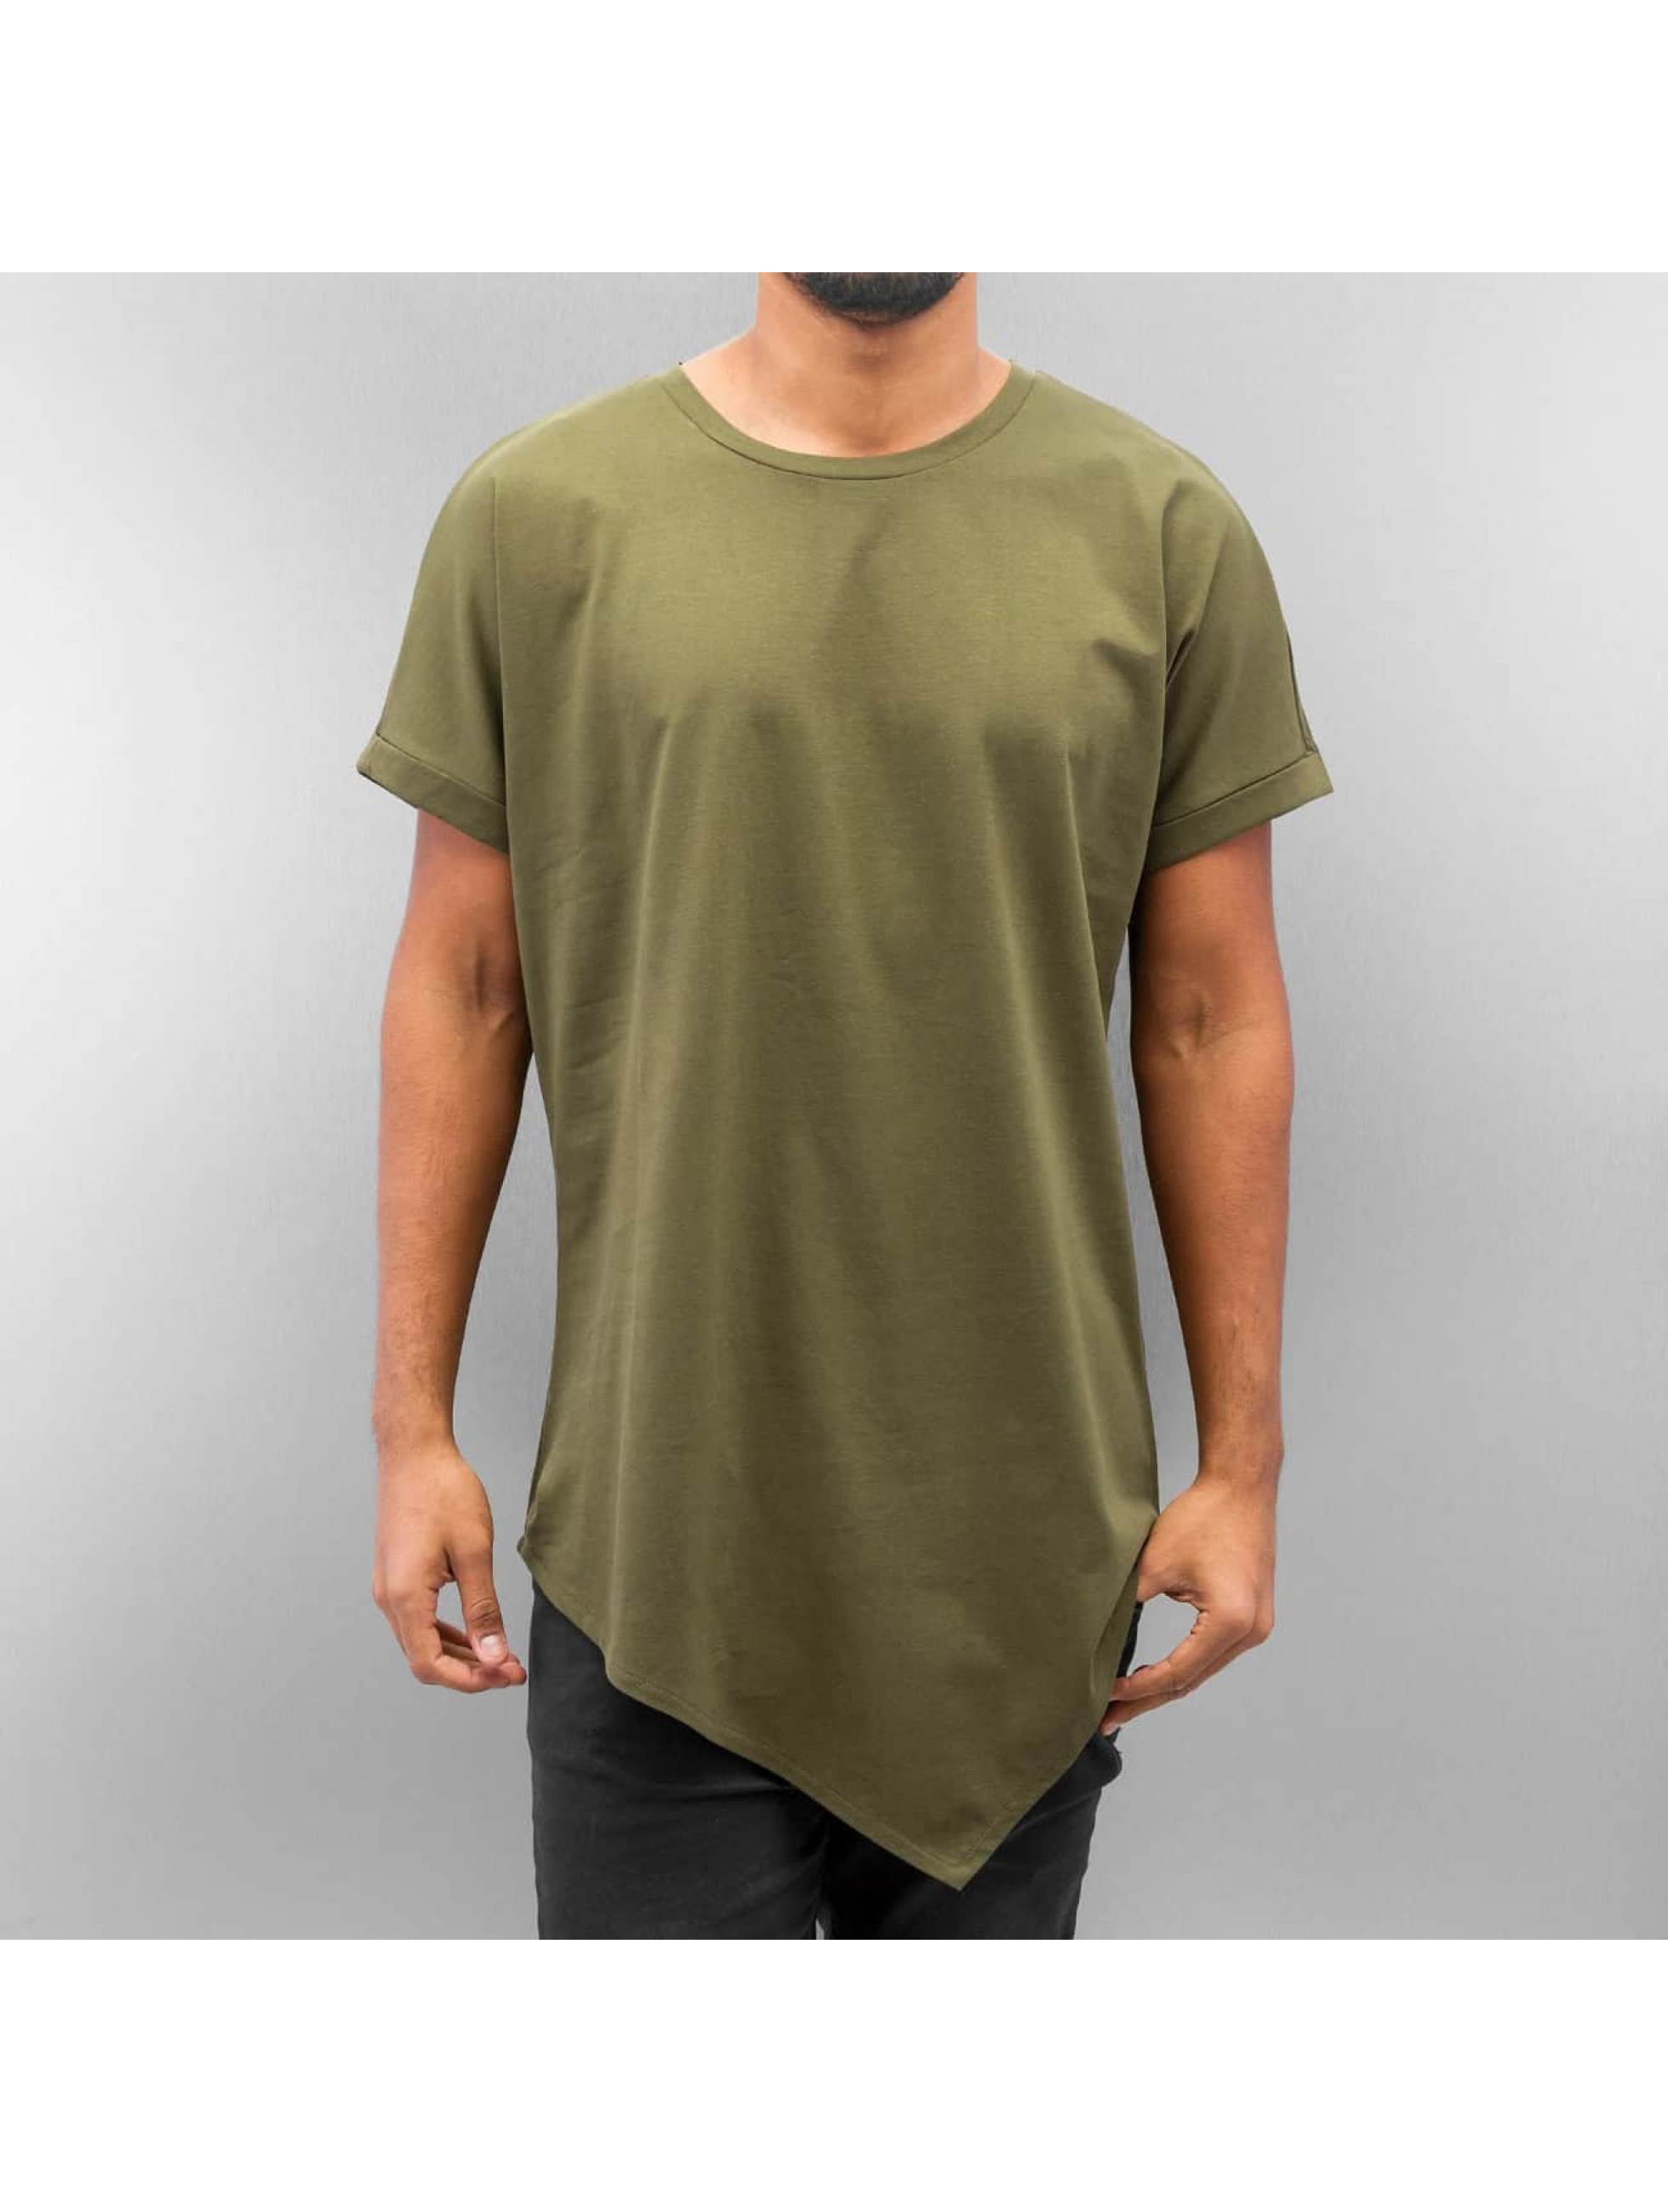 T-Shirt Asymetric Long in olive